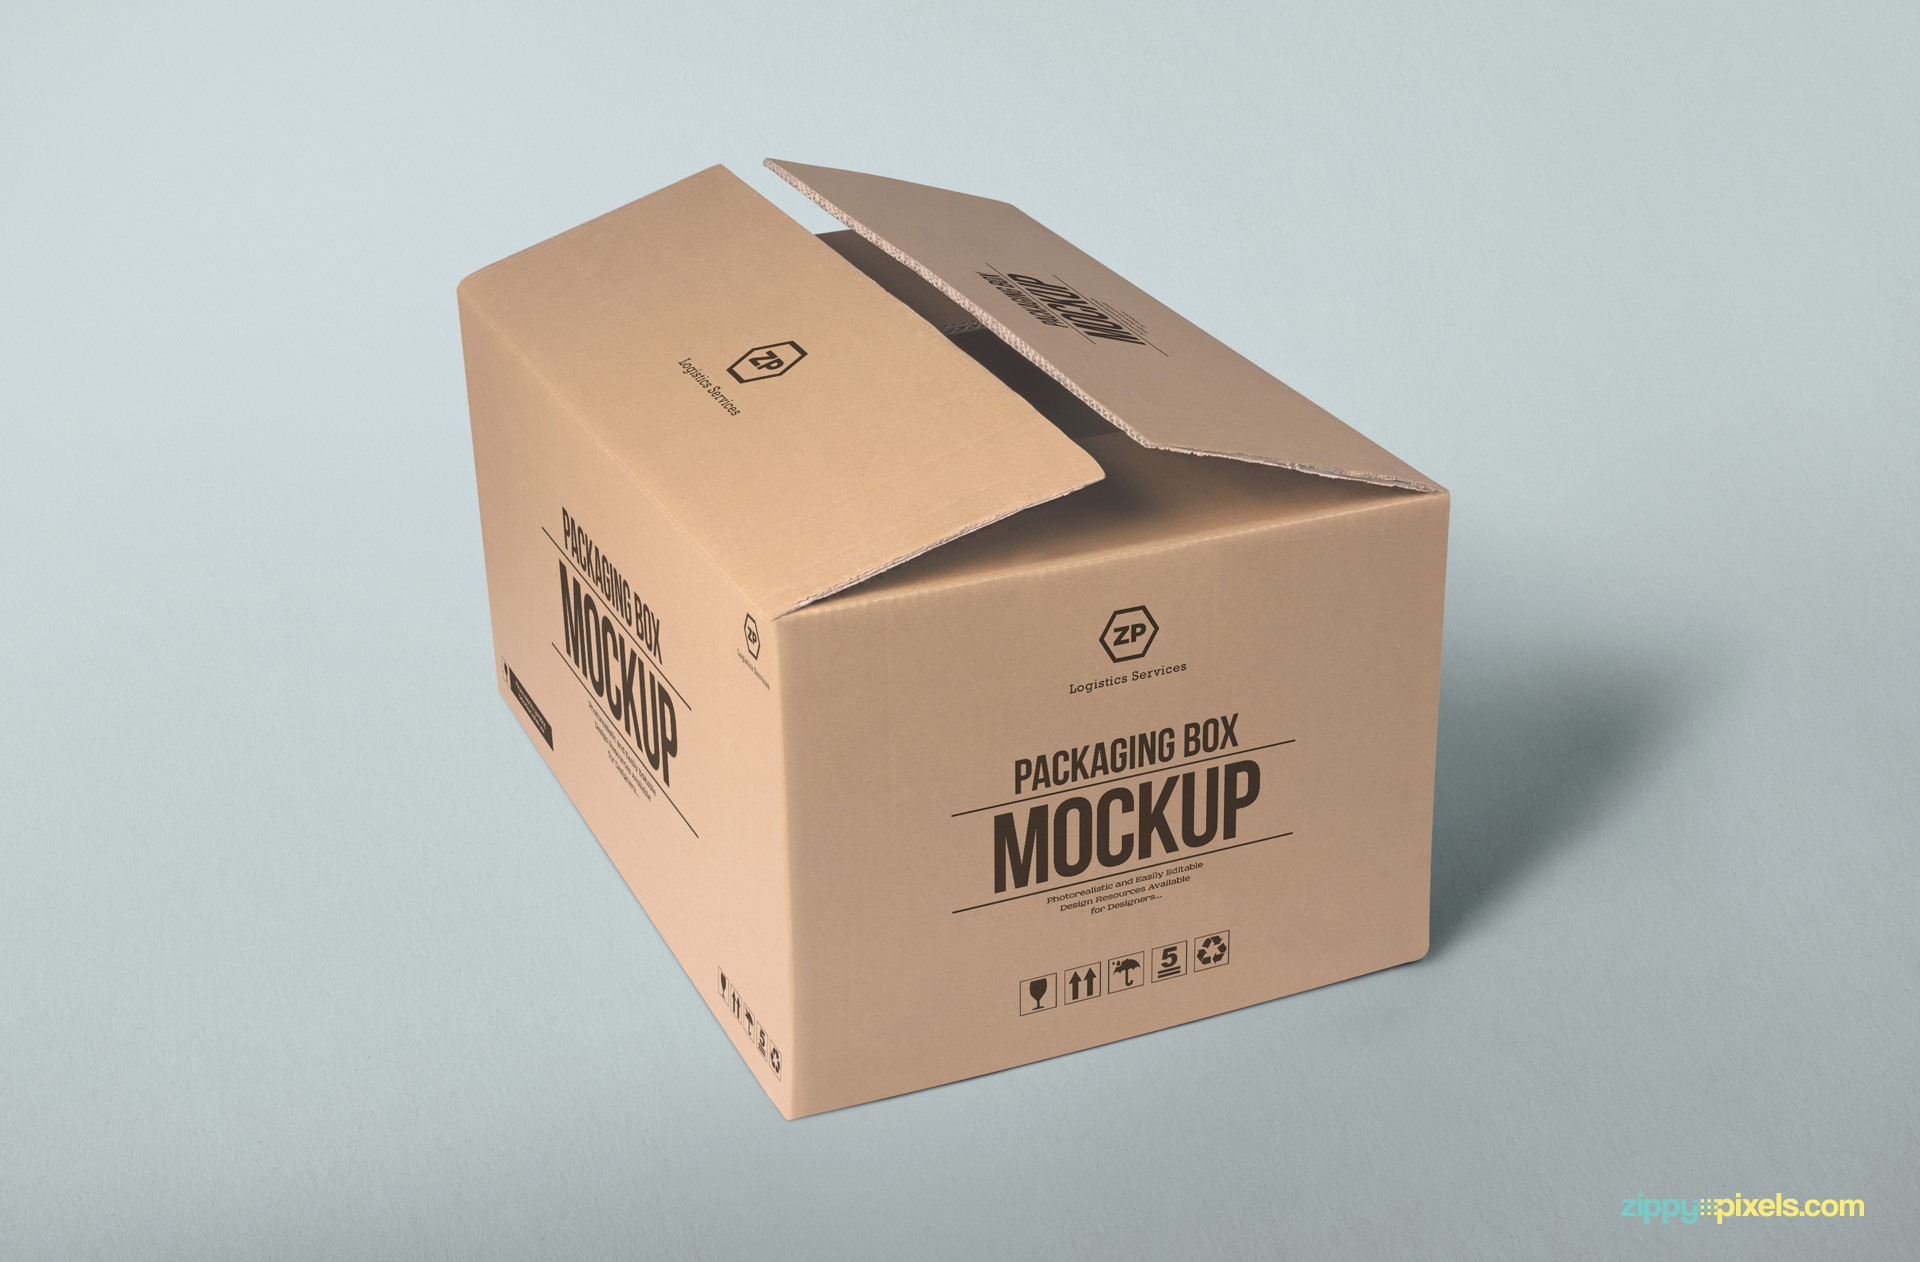 Packaging Box Mockup Free Psd Download Zippypixels